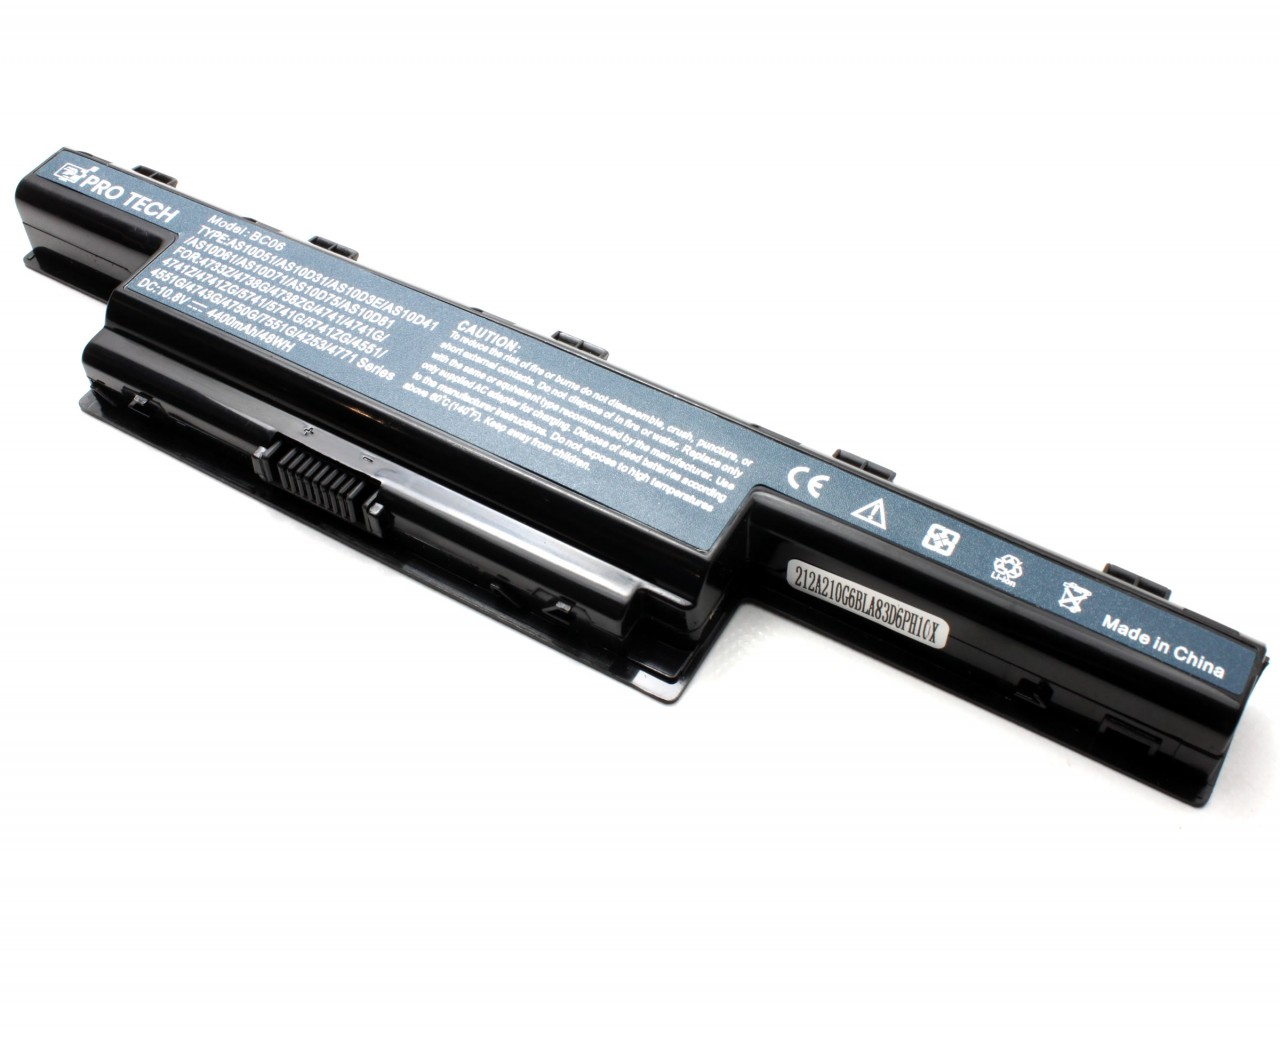 Baterie Packard Bell EasyNote TM82 9 celule imagine powerlaptop.ro 2021